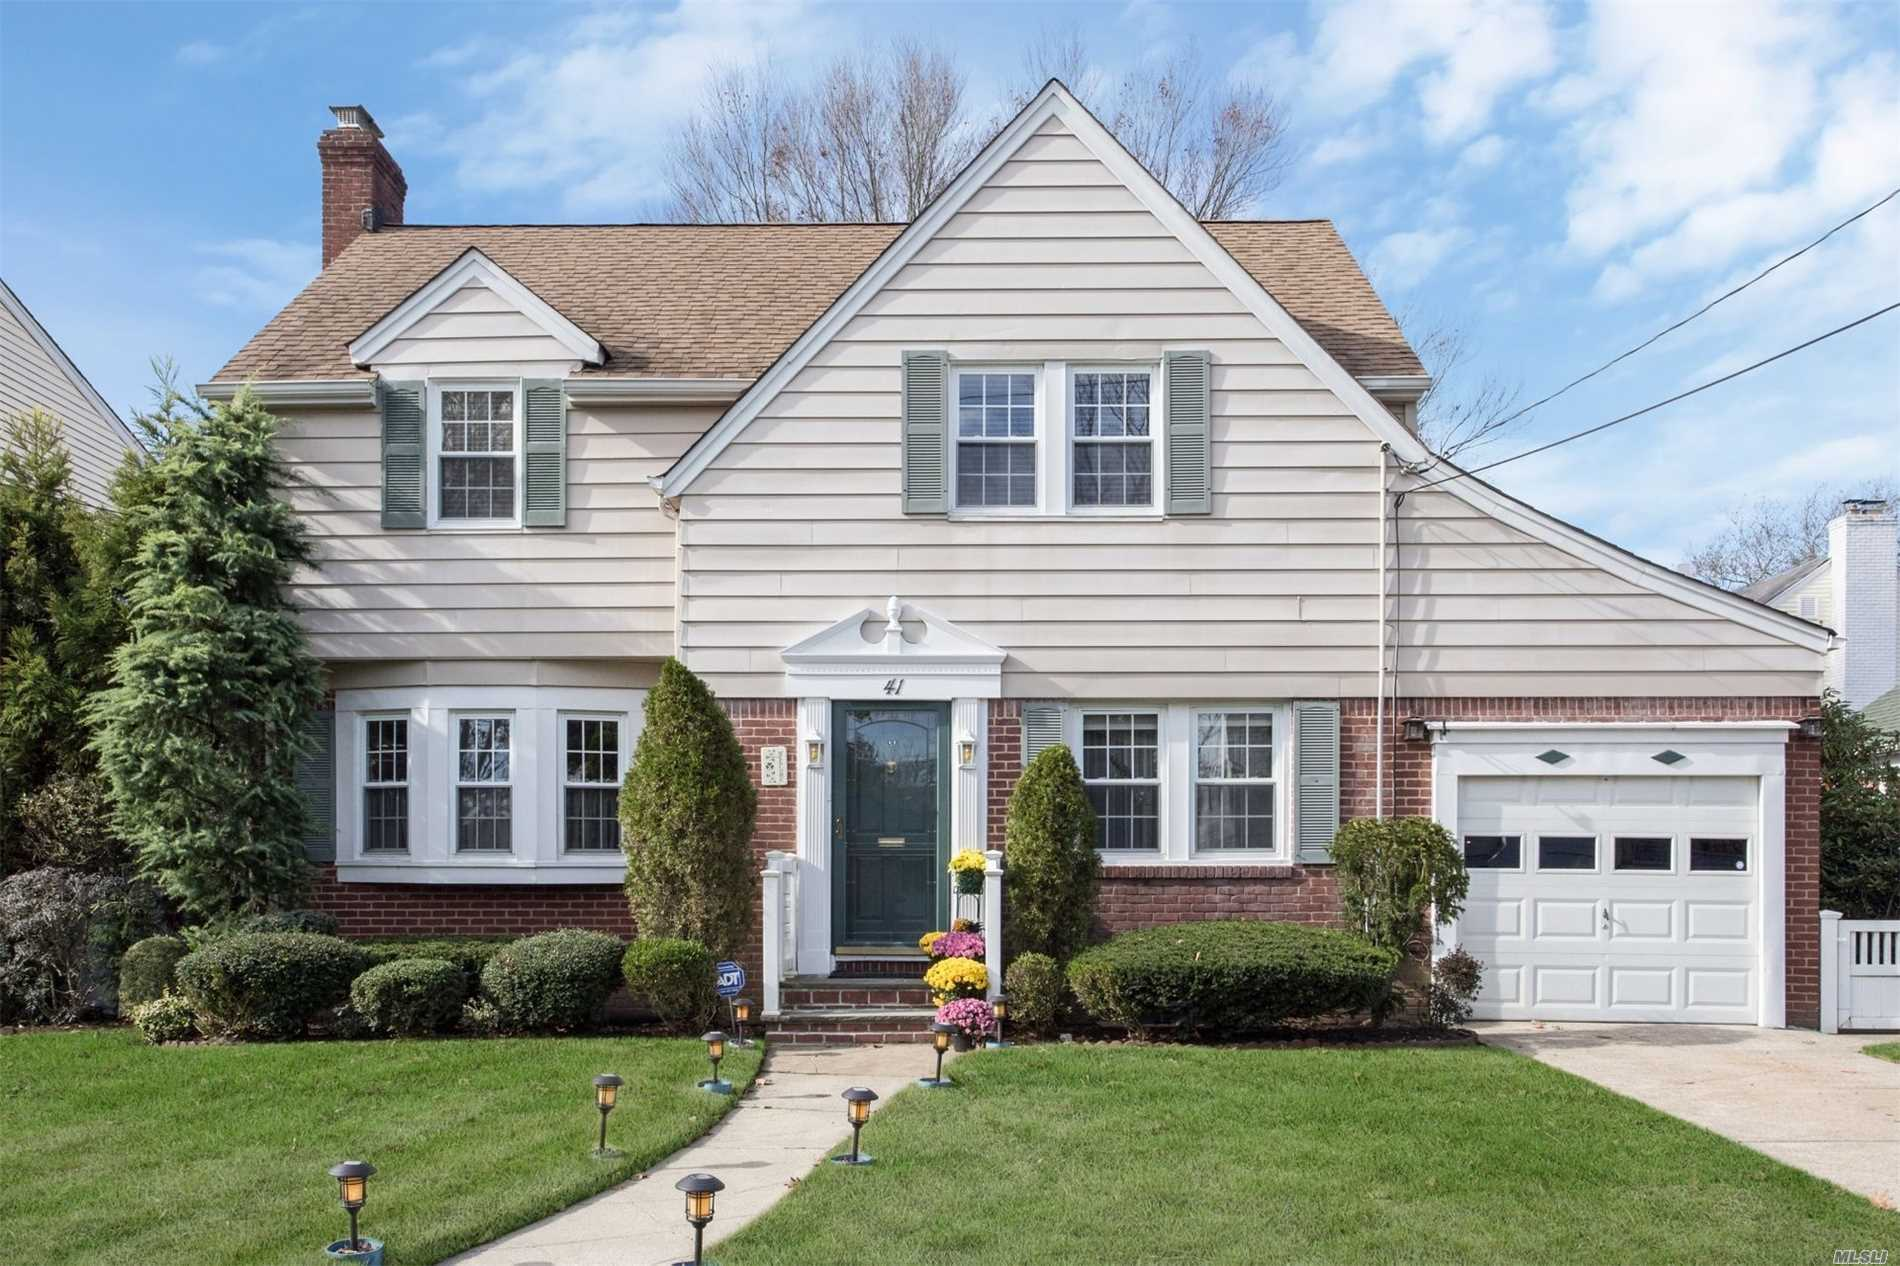 This Classic Center Hall Colonial Is Perfectly Situated In The Heart Of Malverne Village Near The Lirr, Shops And Parkway! Meticulously Maintained, This Home Is Waiting For You To Move In And Enjoy Your Cozy Living Room With A Fireplace, Eat-In-Kitchen Overlooking The Manicured Yard And Patio With Retractable Awning. Low Taxes Which Have Been Grieved!